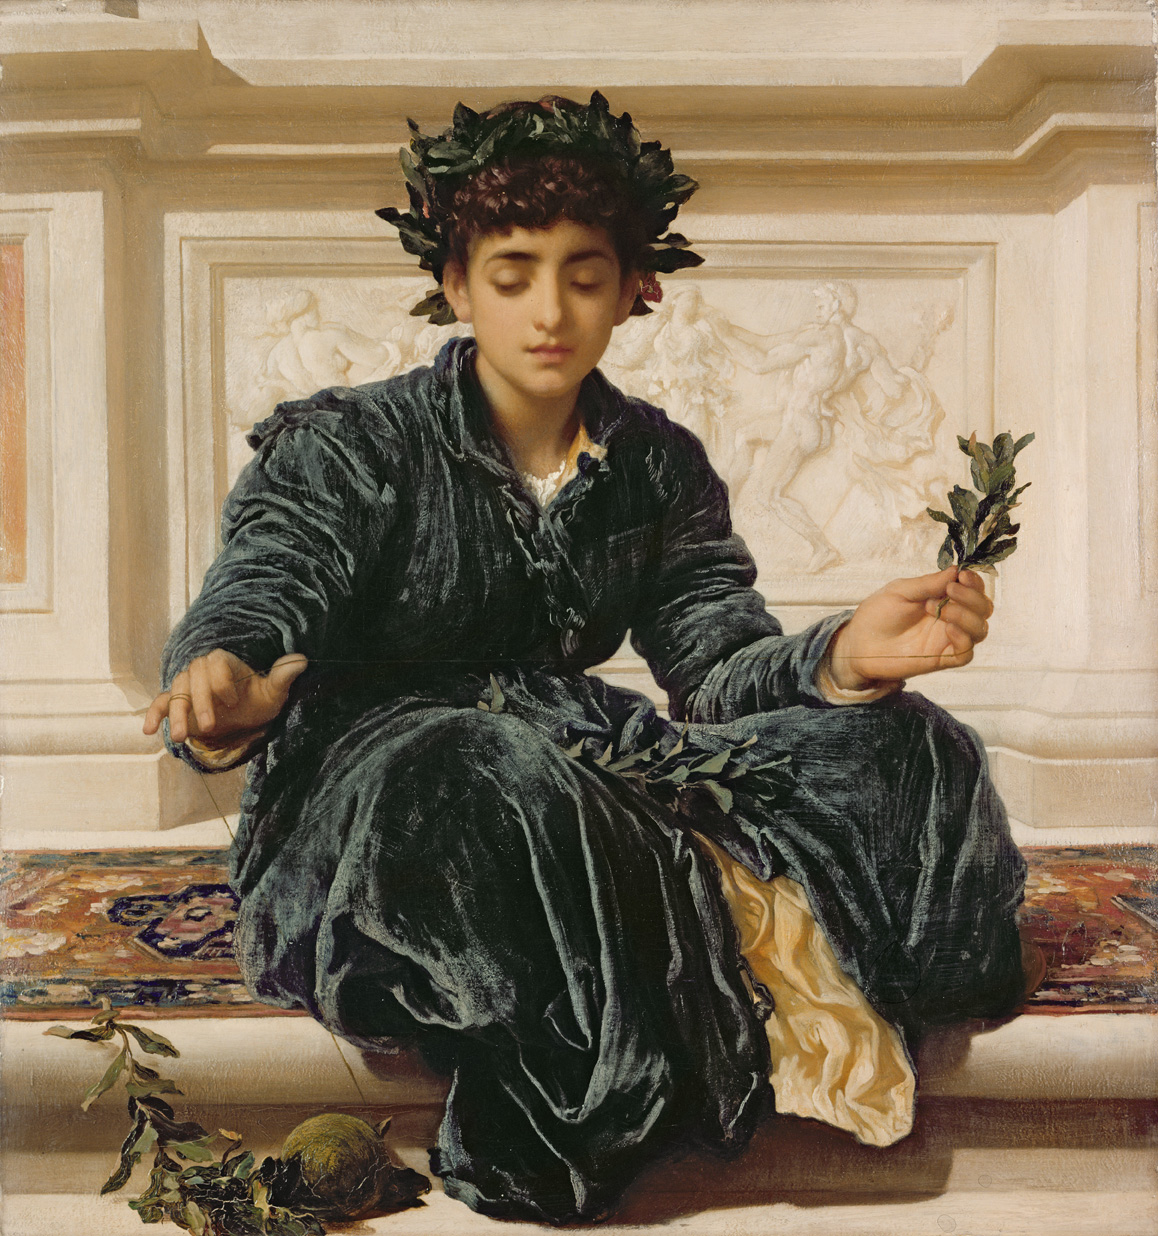 Weaving the Wreath, by Frederic Leighton, 1872. Sudley House, Aigburth, Liverpool, England.